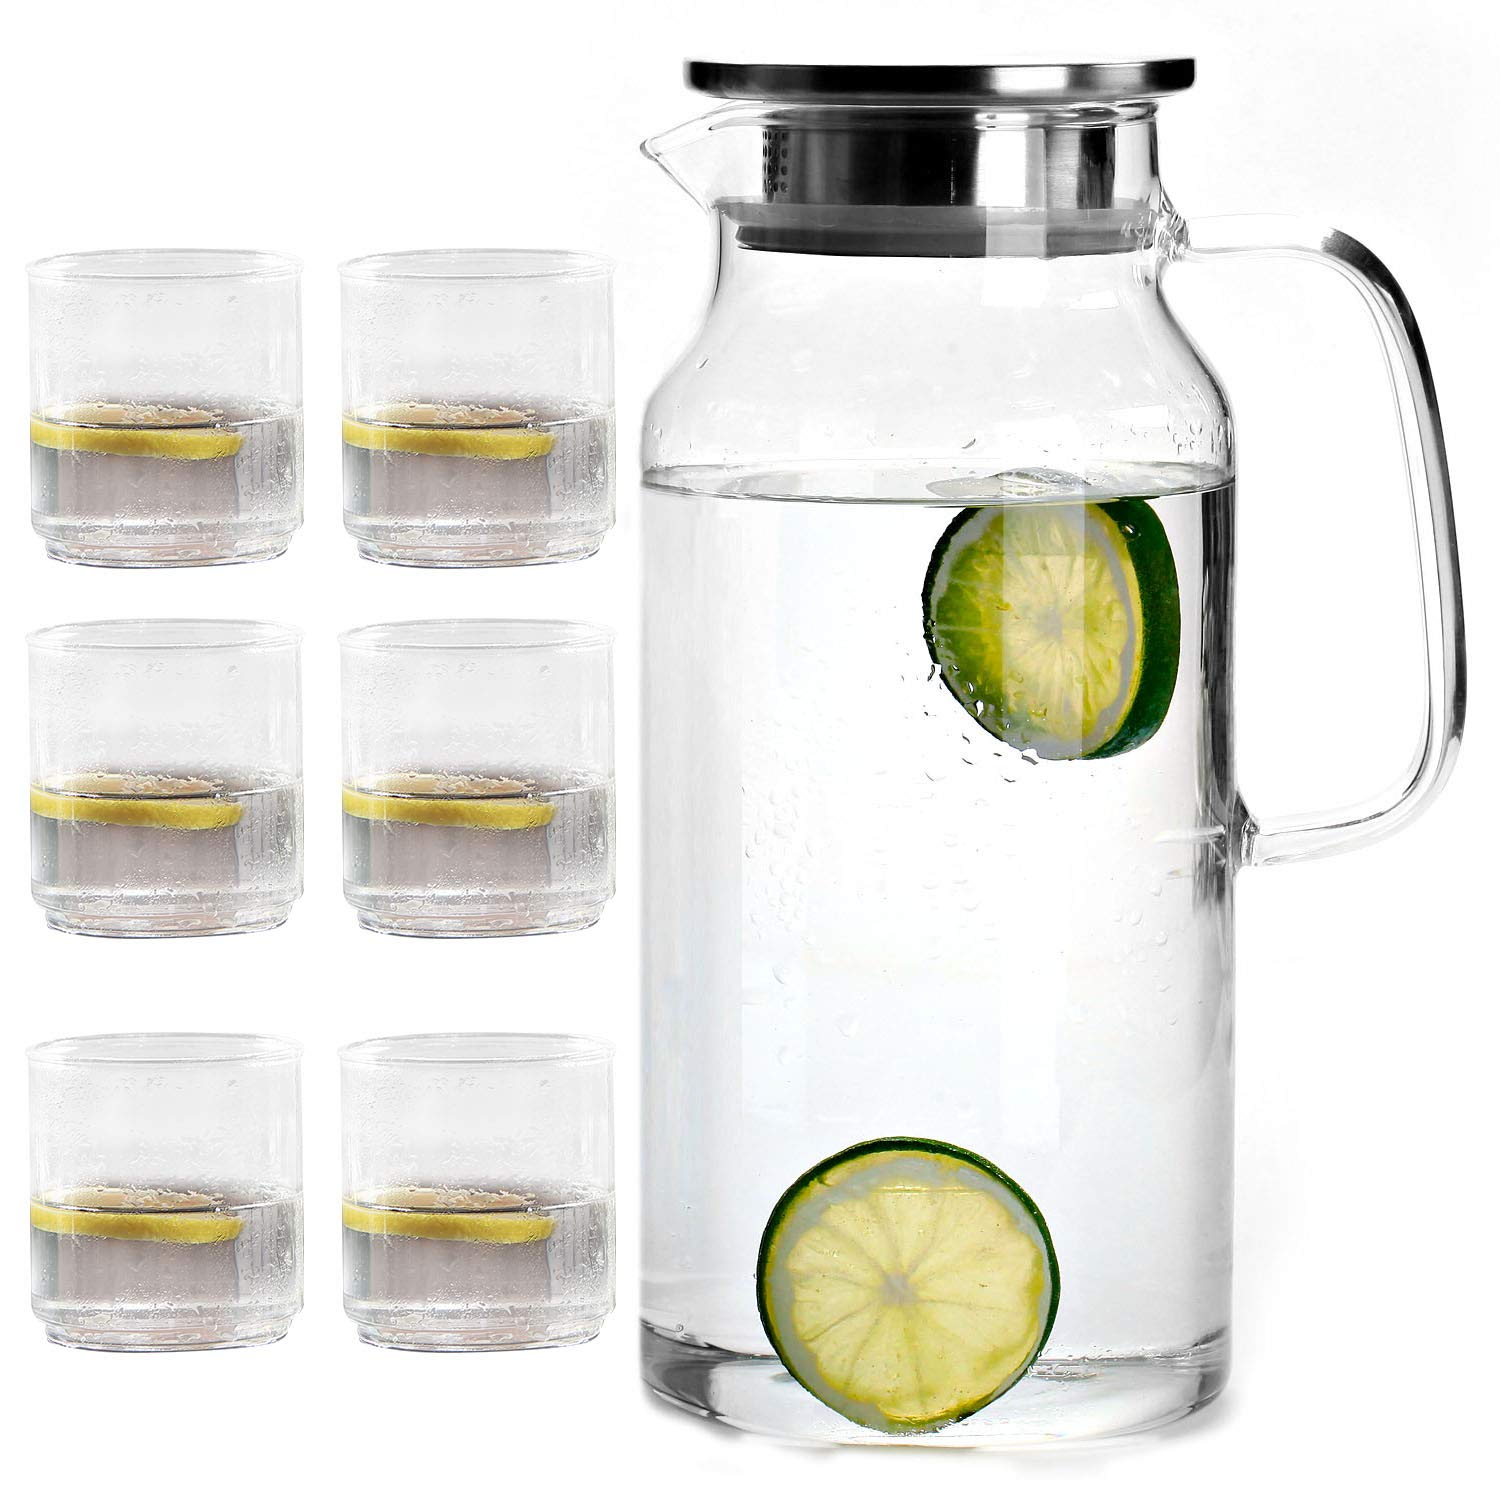 Cupwind Explosion-Proof Heat Resistance 55 oz Borosilicate Glass Water Carafe Pitcher with Stainless Steel Infuser Lid x Set of 6 Glass Beer Drinks cups 8.5 oz